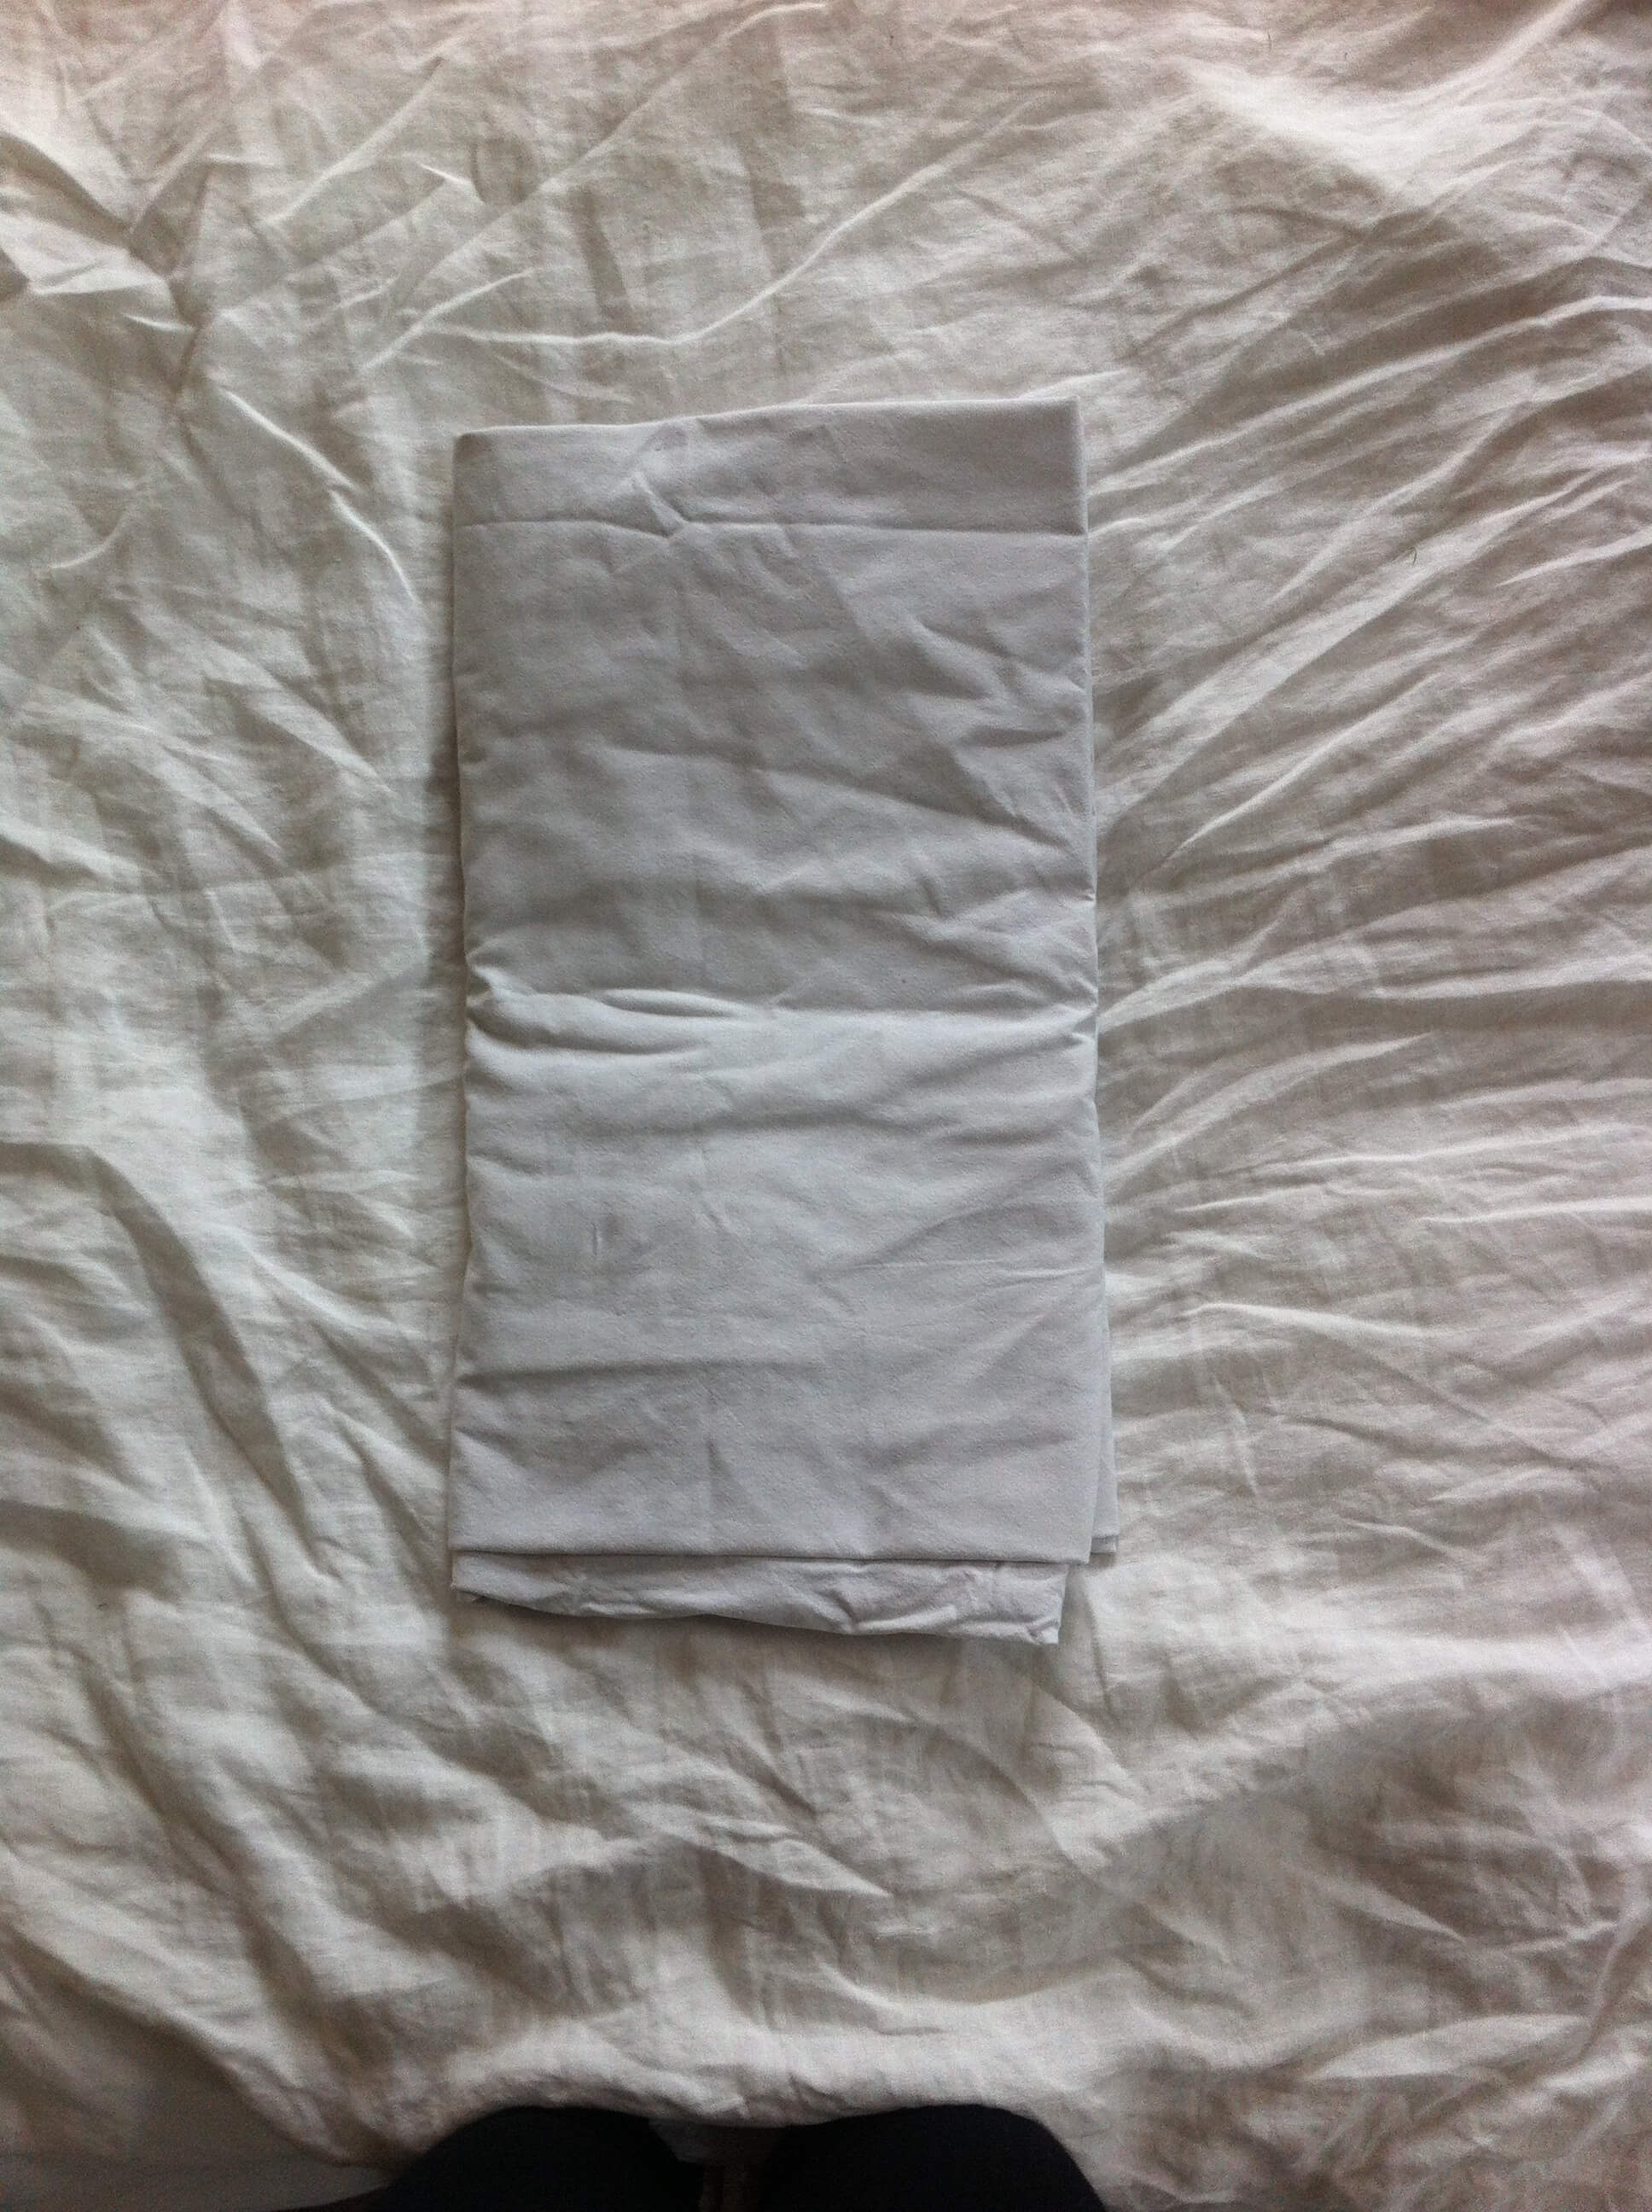 How to fold a fitted sheet Step 6